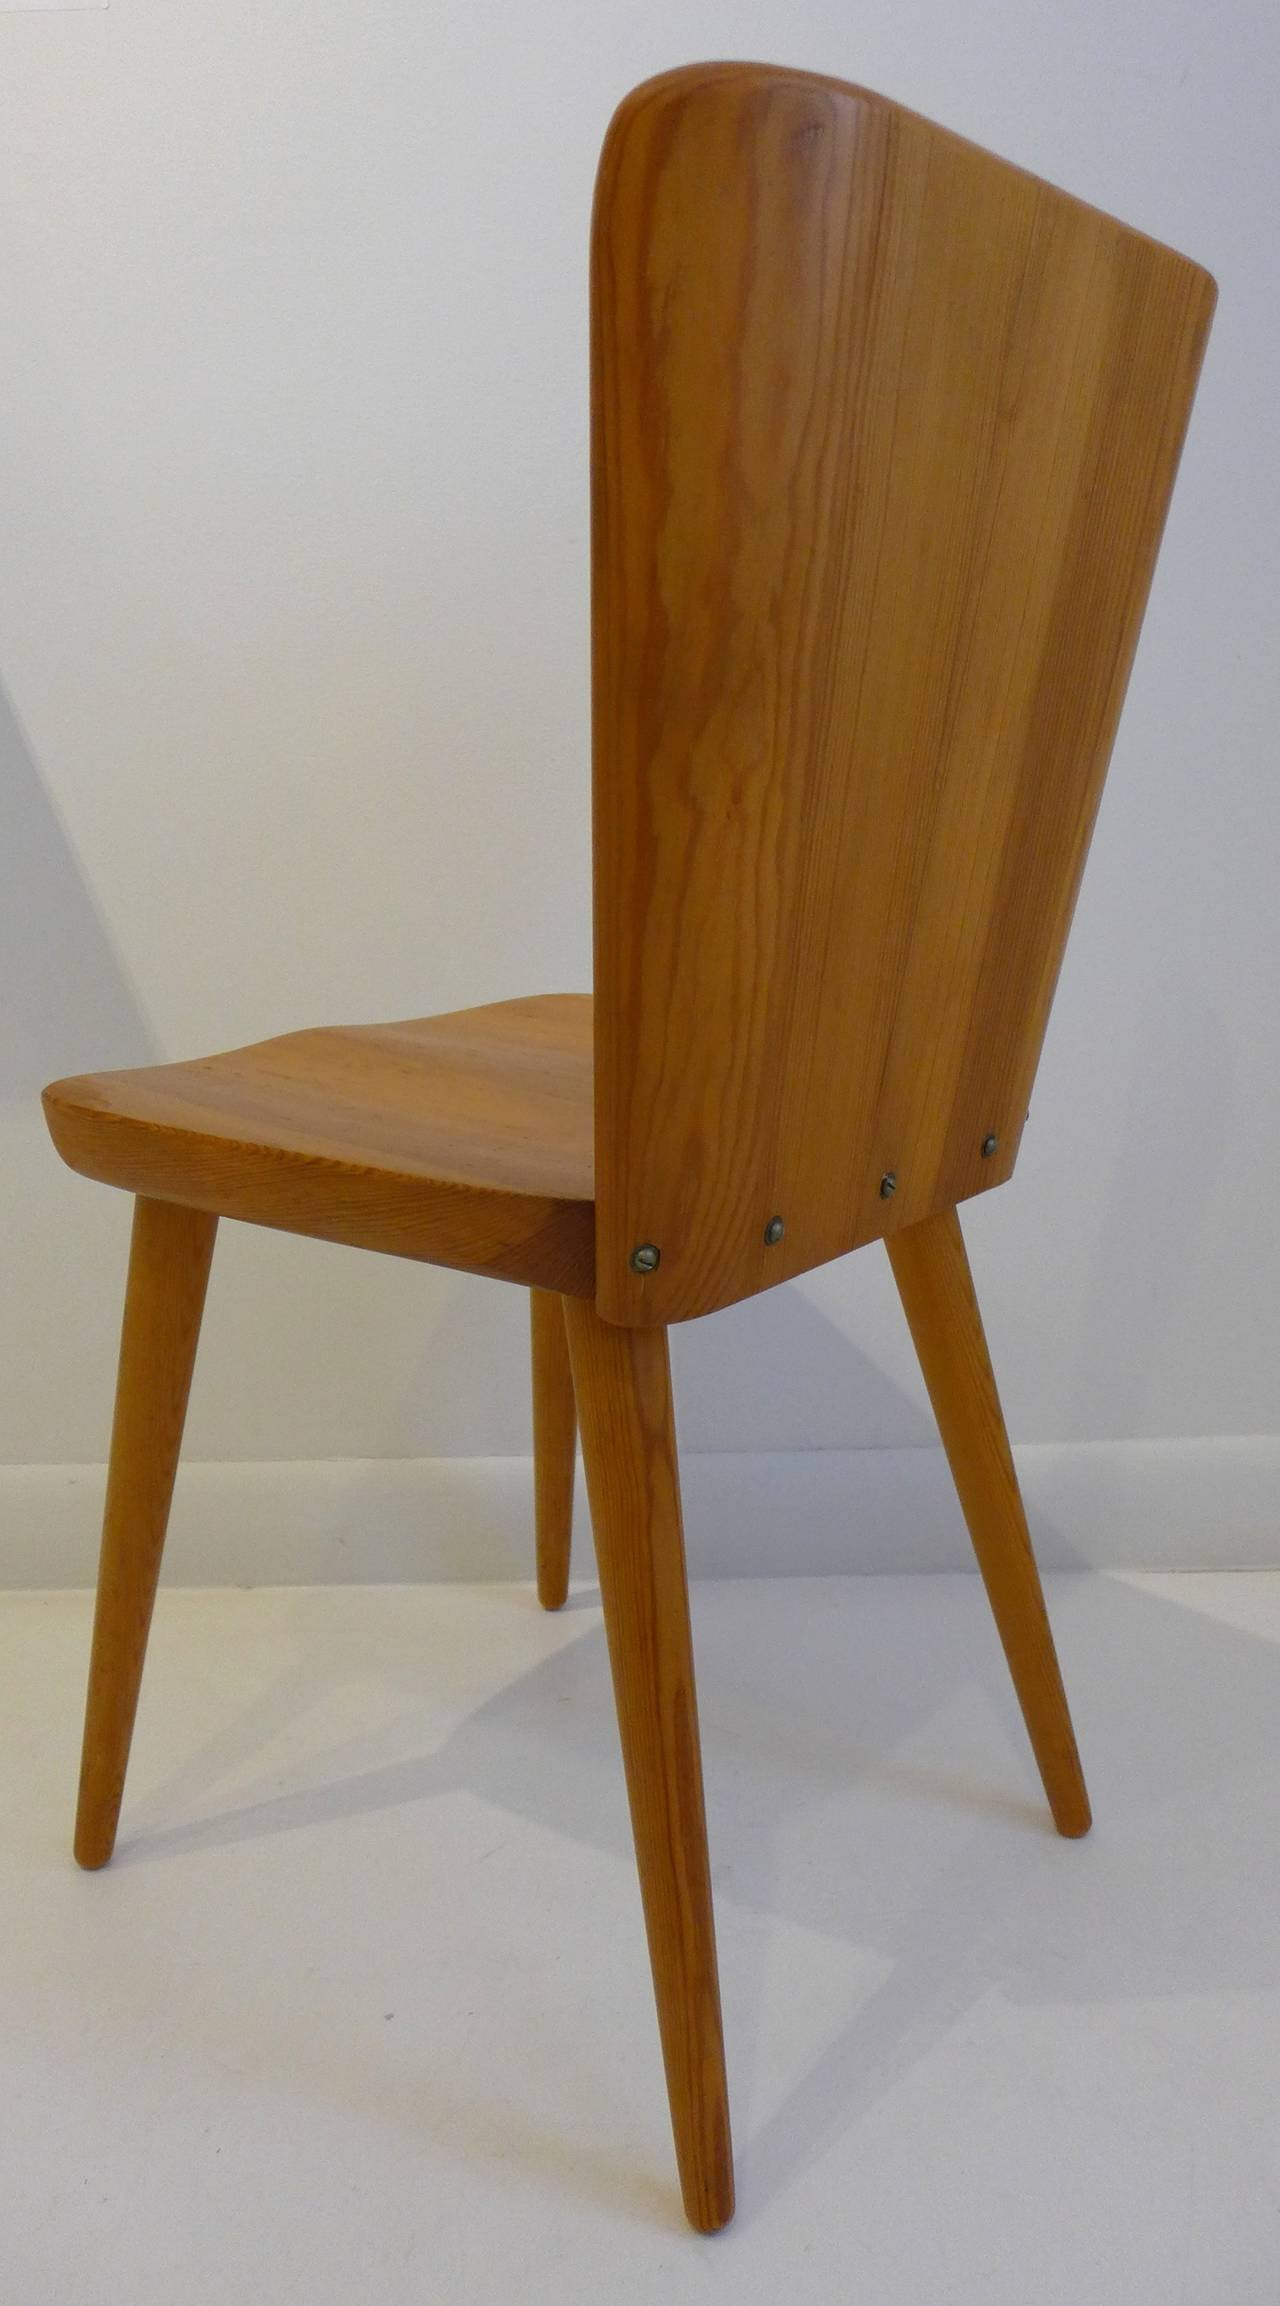 Scandinavian Modern Pair Of Mid Century Swedish Chairs In Pine For Sale